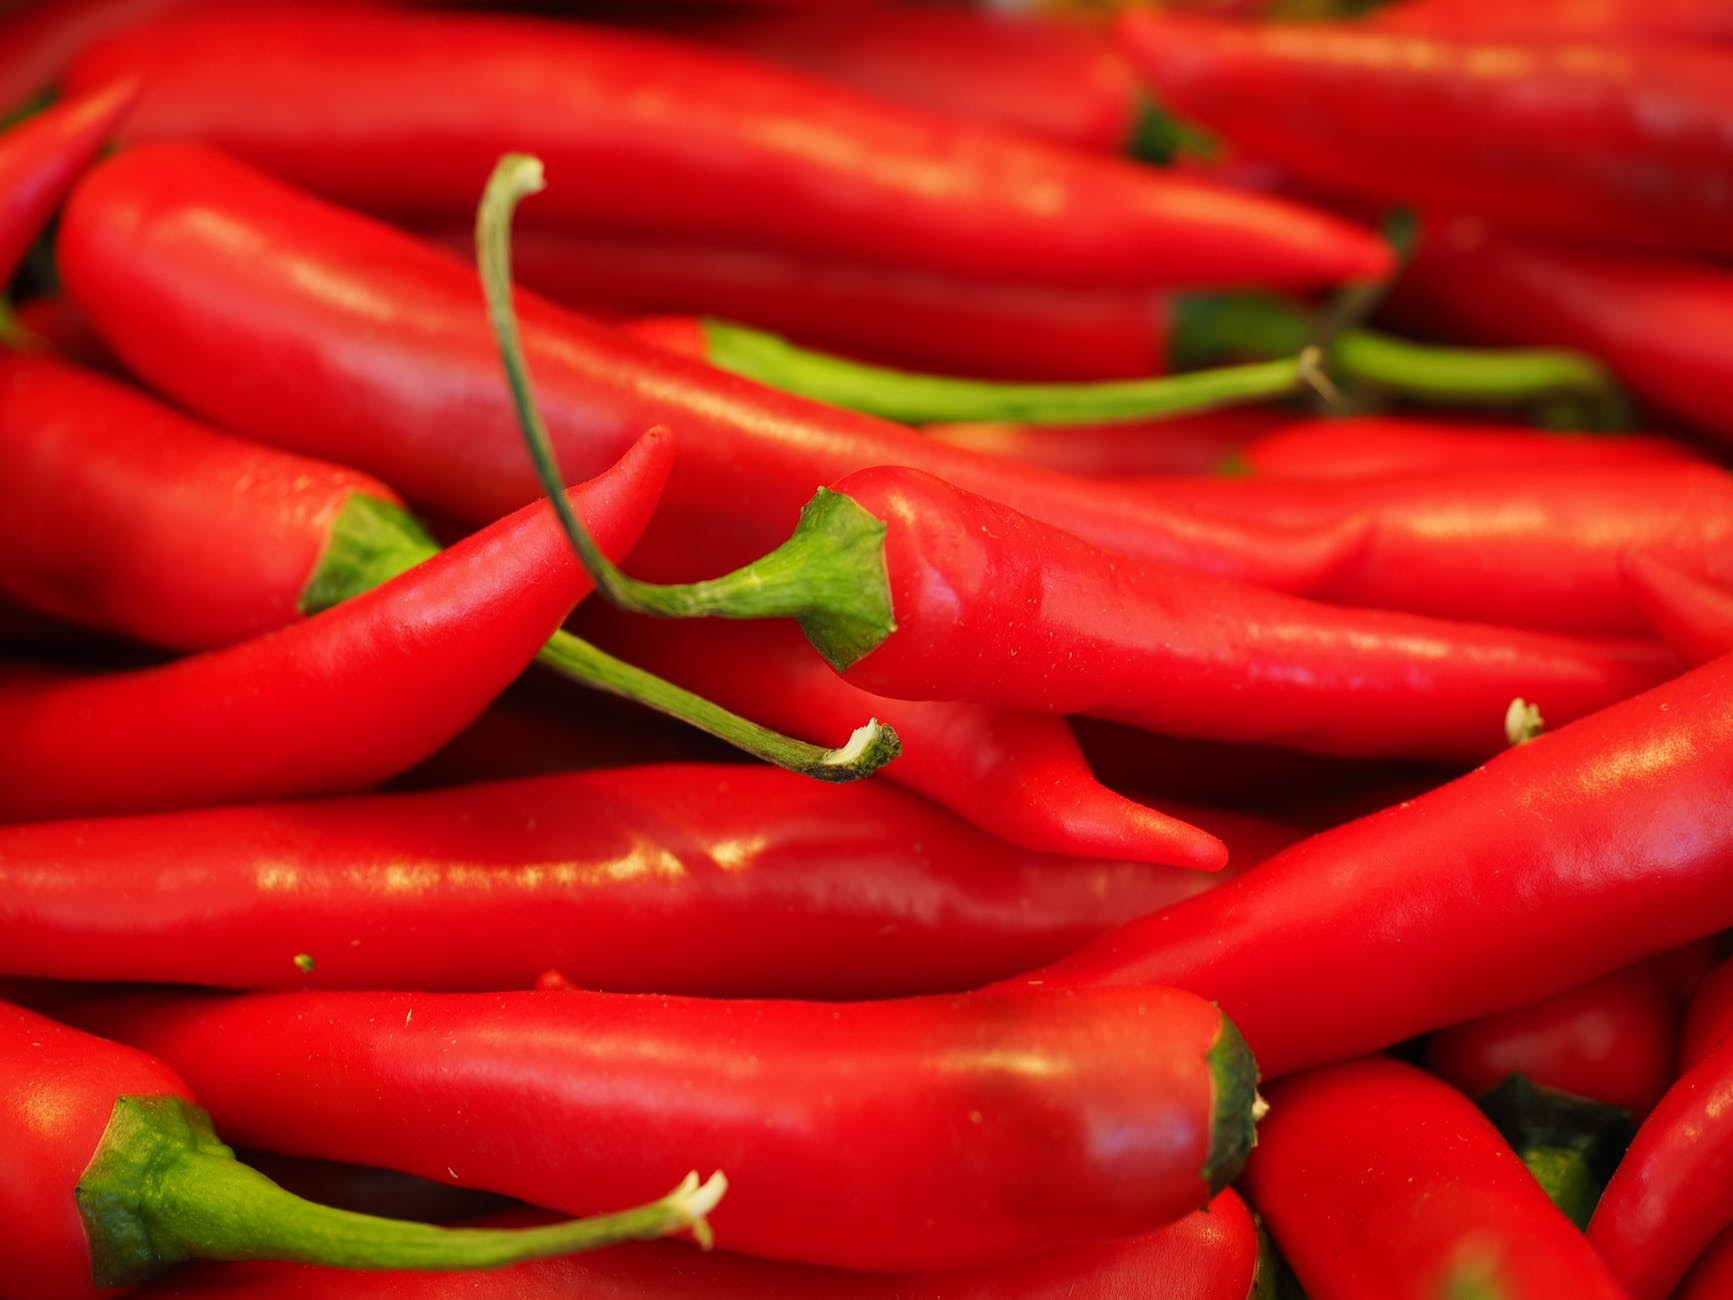 chili-red-sharp-spice-42259.jpeg